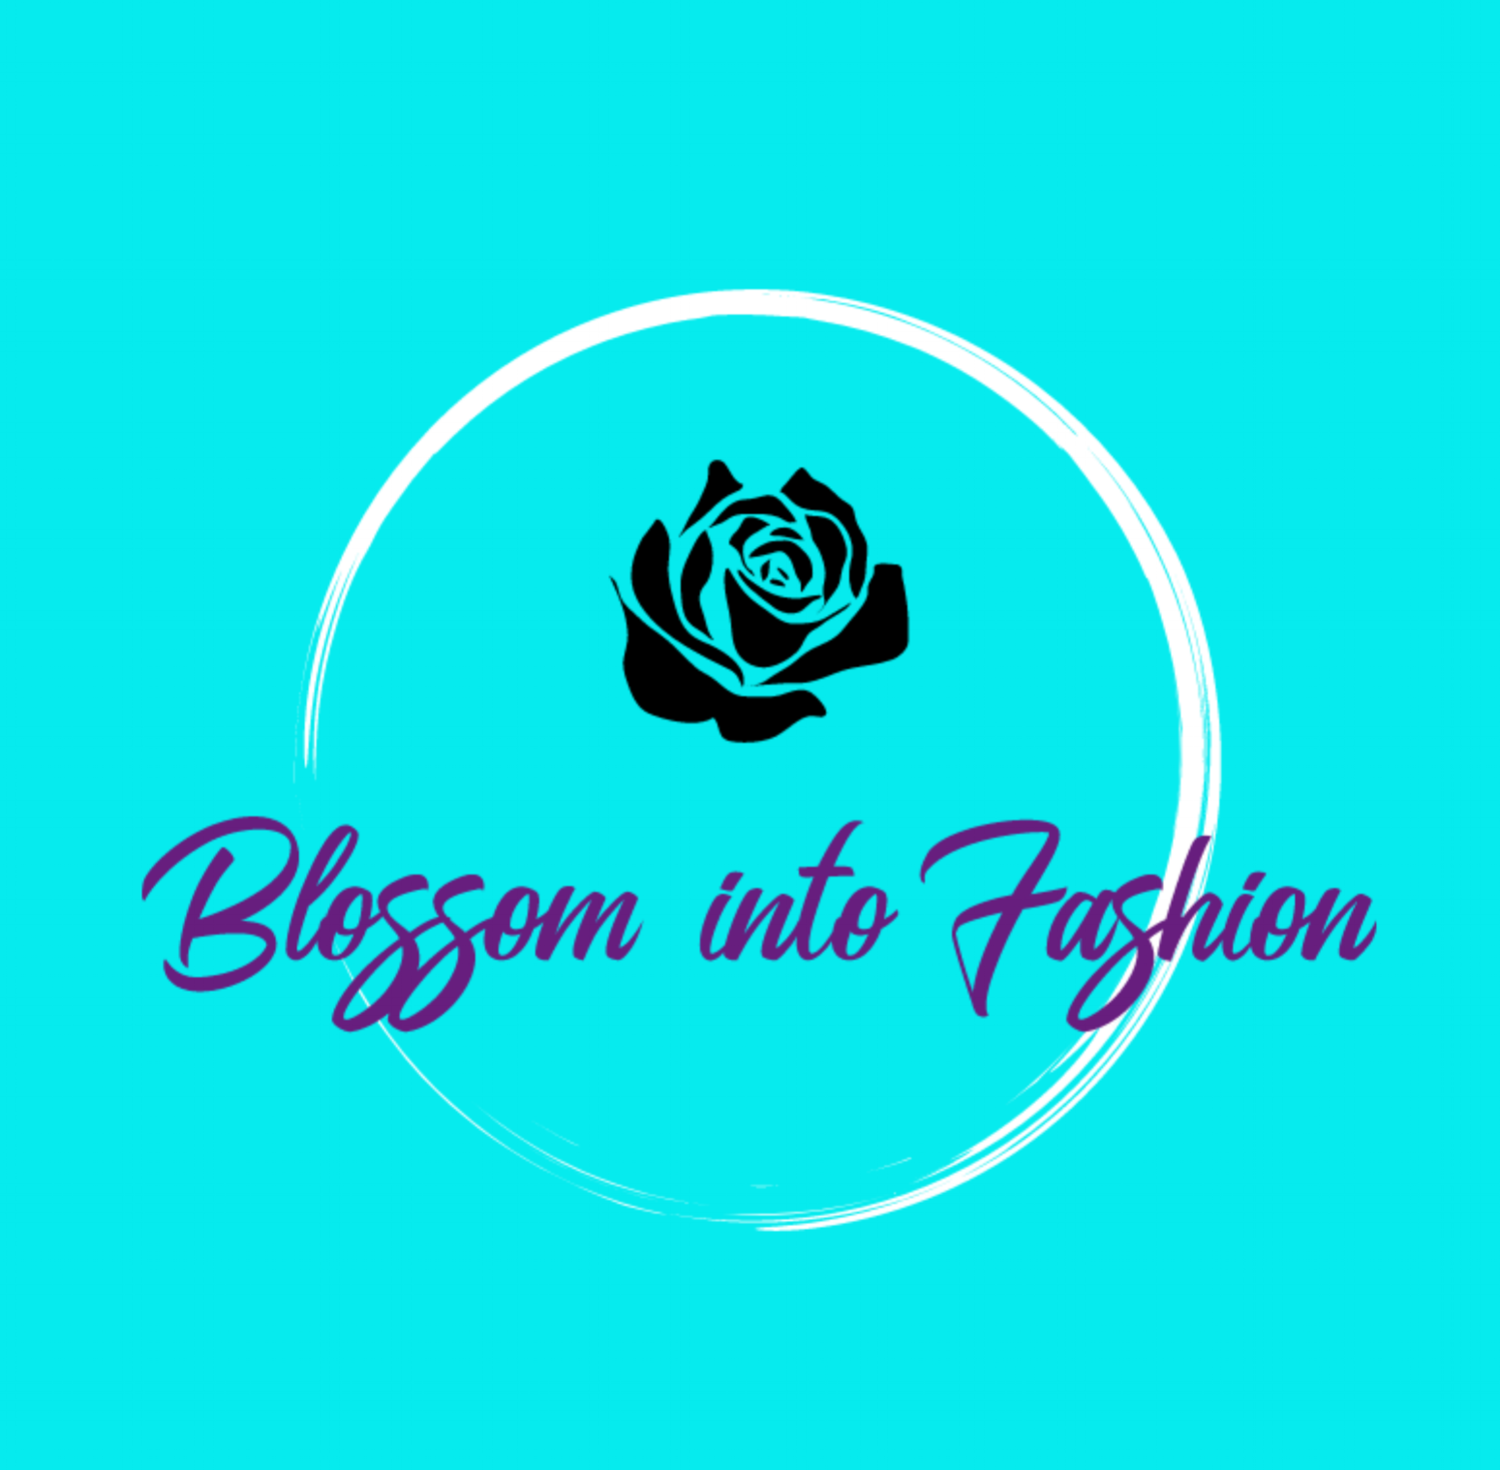 Blossom into Fashion